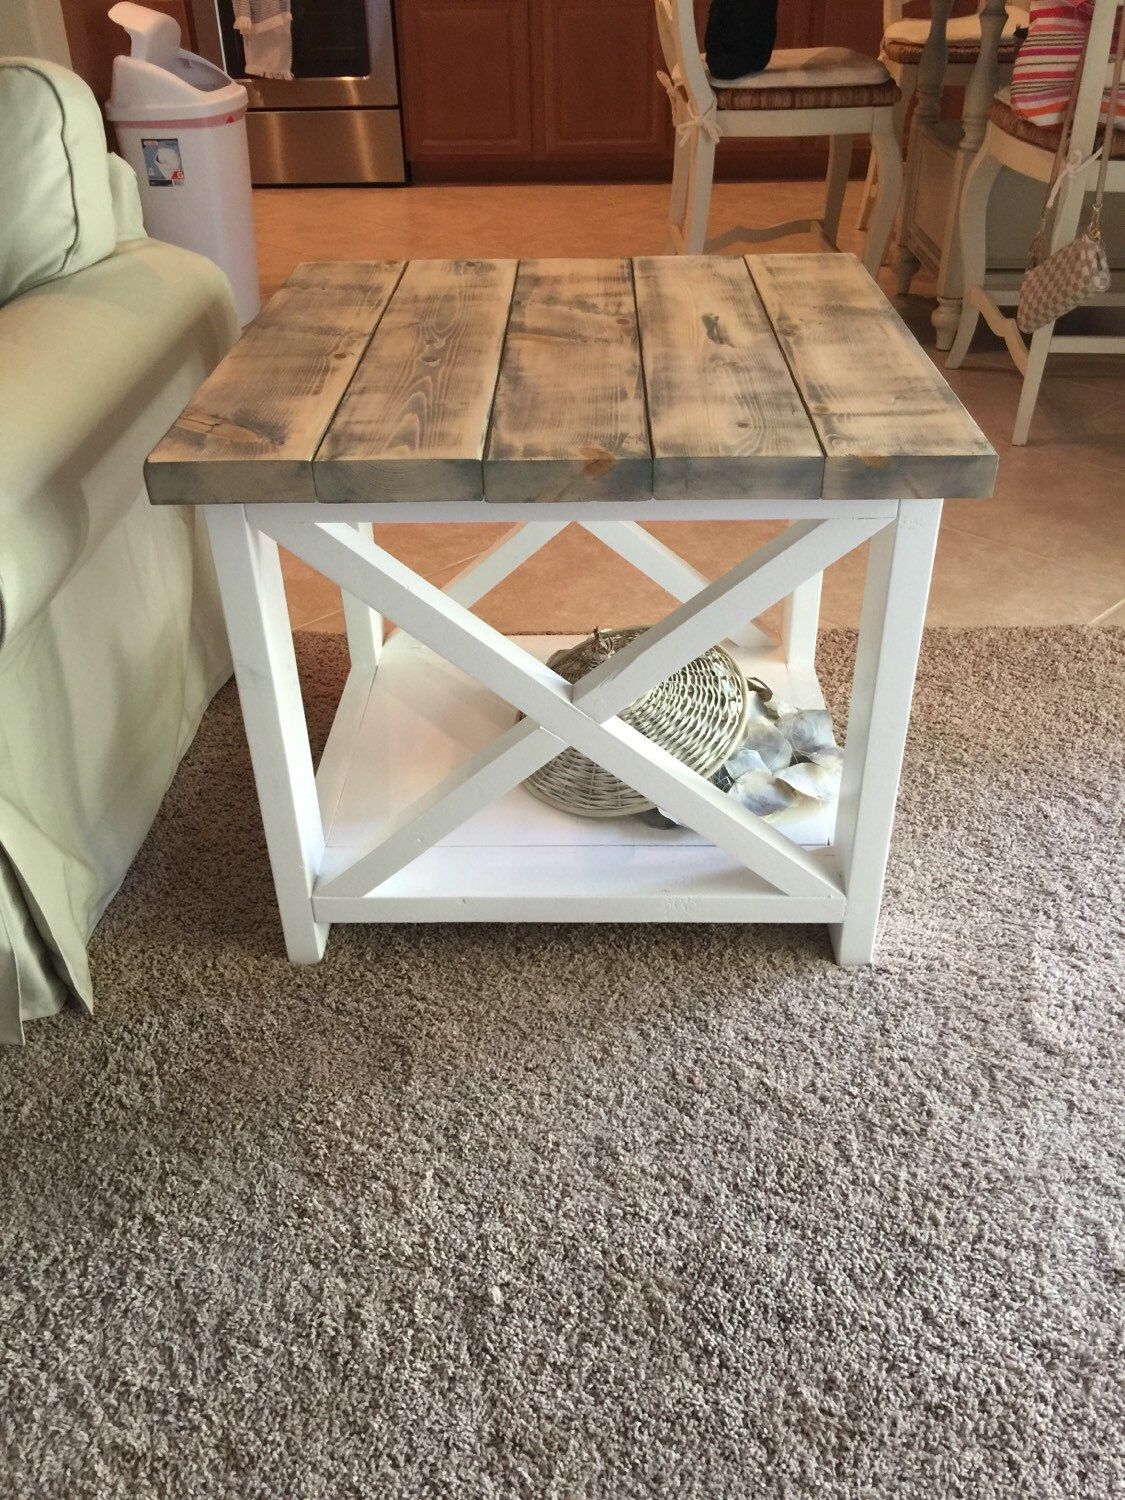 custom rustic farmhouse end table accent thewoodmarket etsy listing small white round side modern with storage west elm scoop lamp night tables for bedroom acrylic ikea mohawk